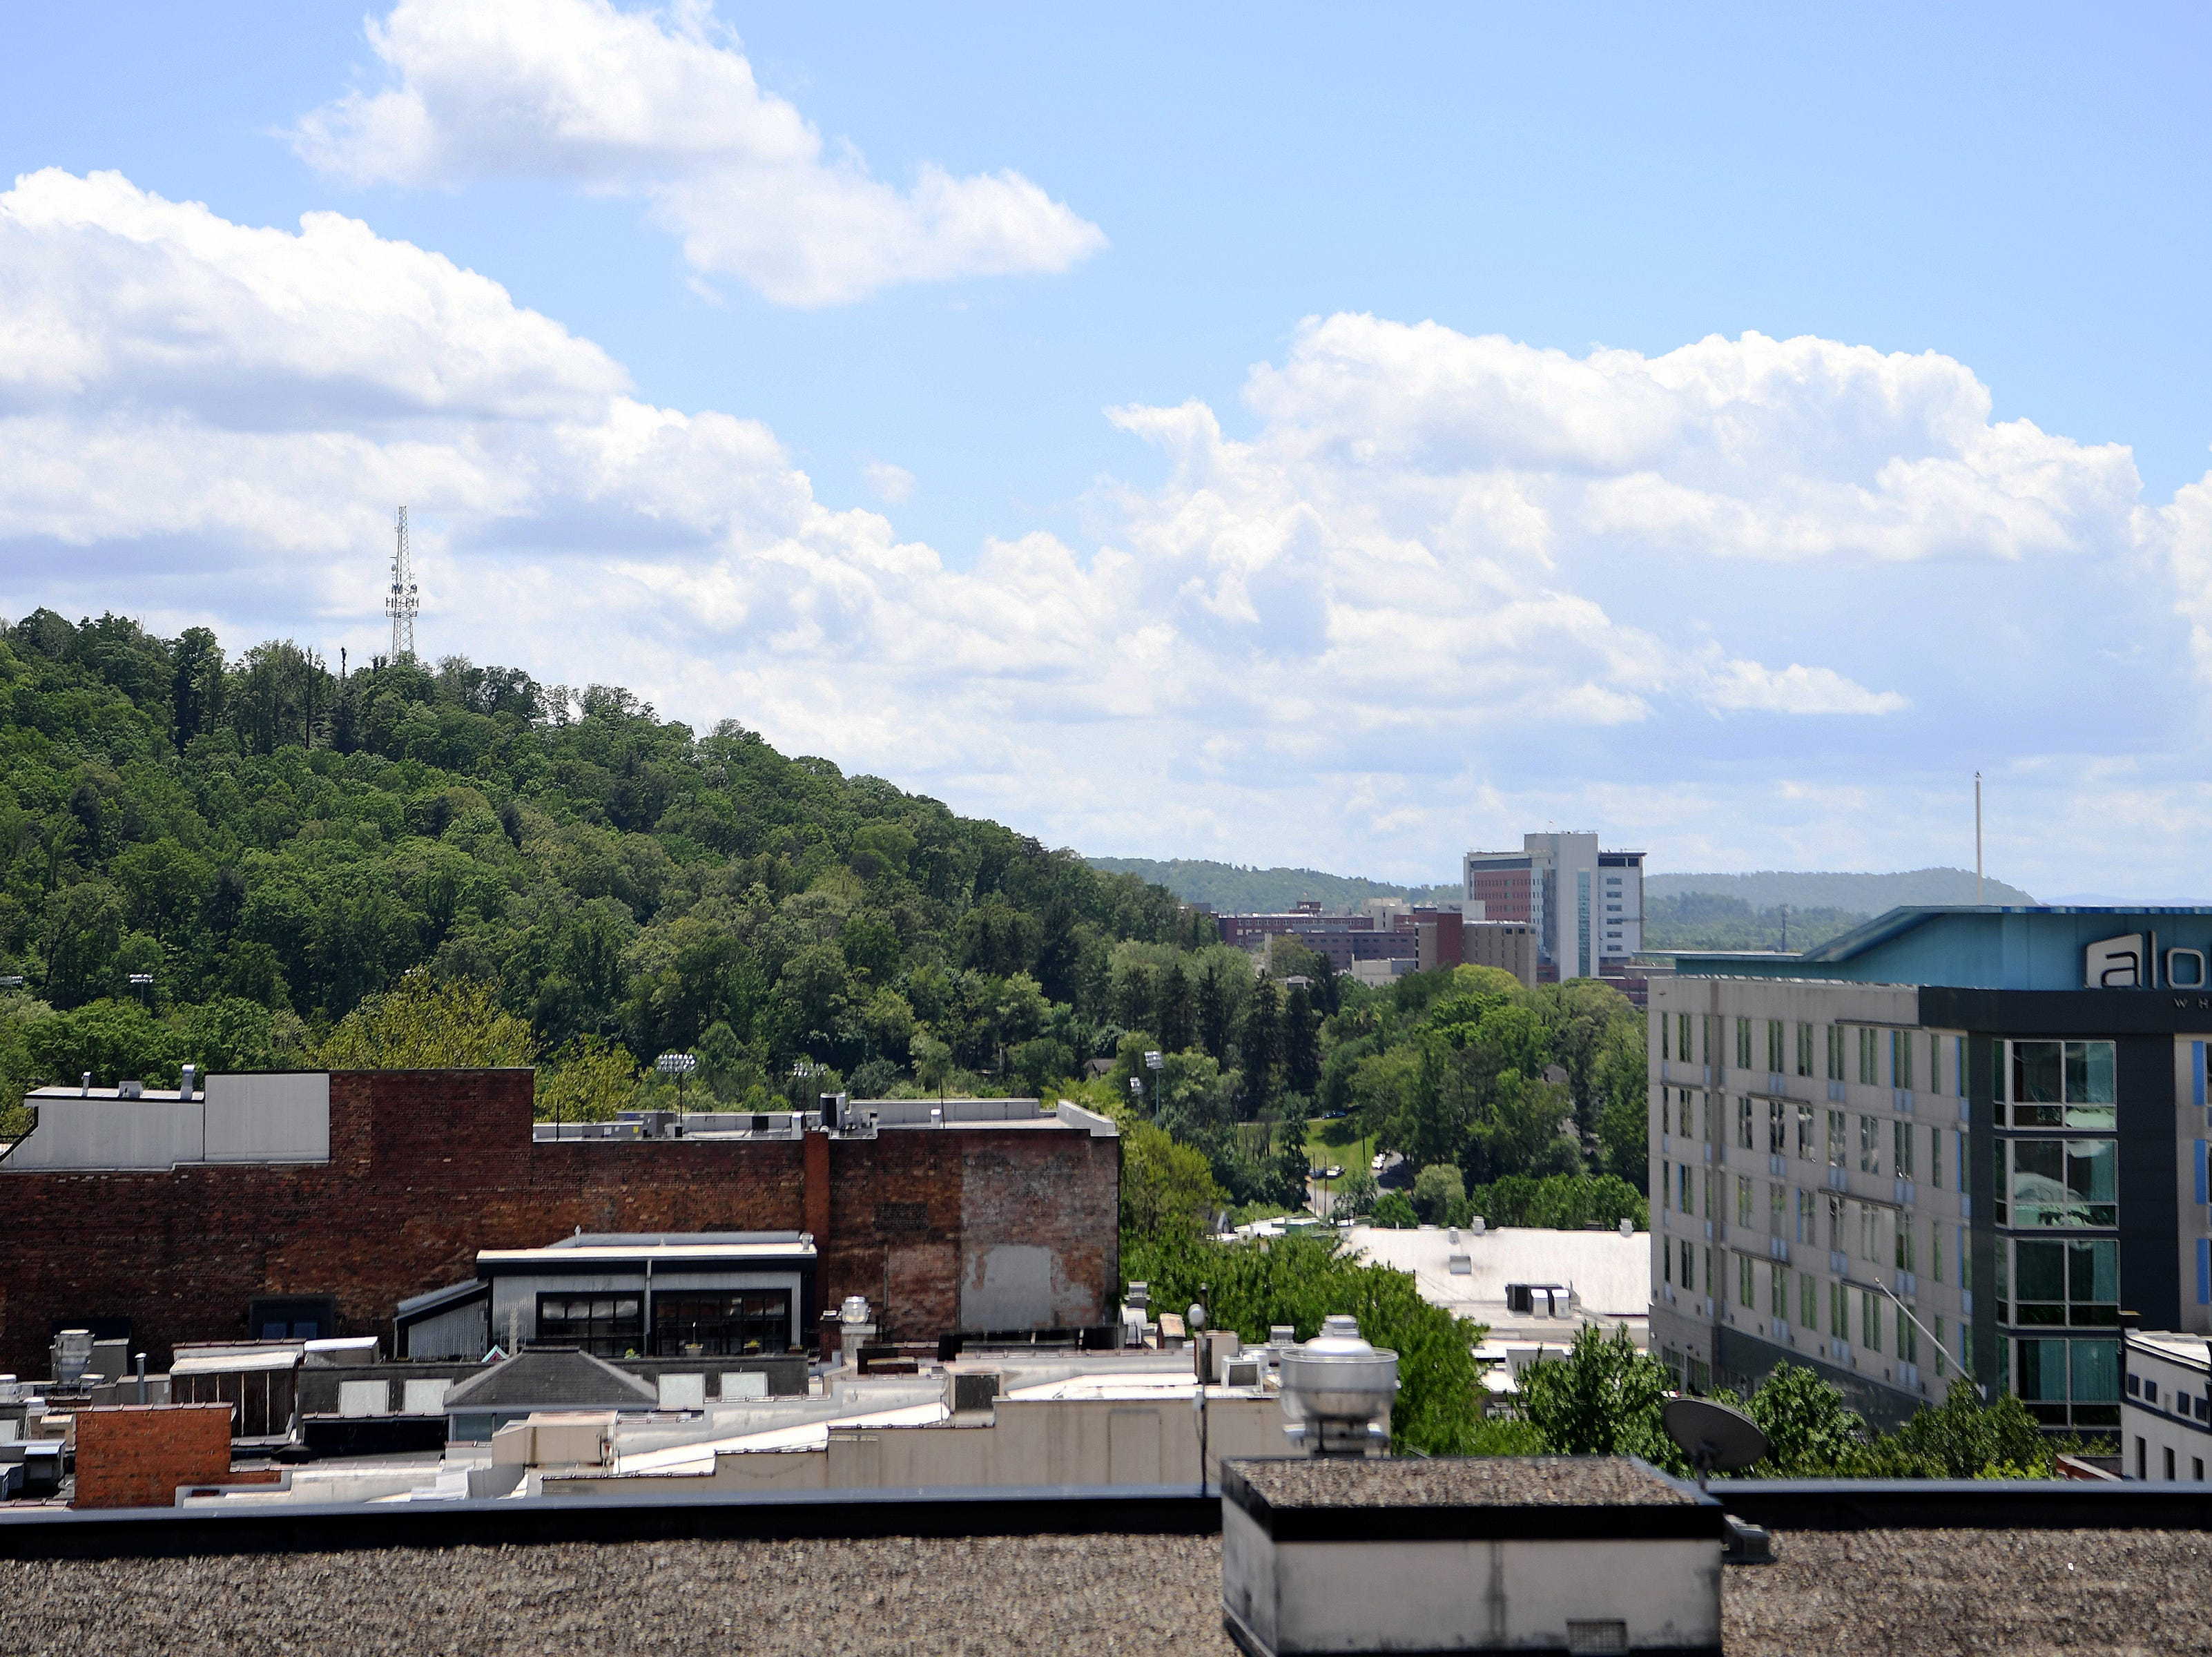 The view from the balcony of the new Asheville Art Museum which will be rooftop sculpture terrace when complete.